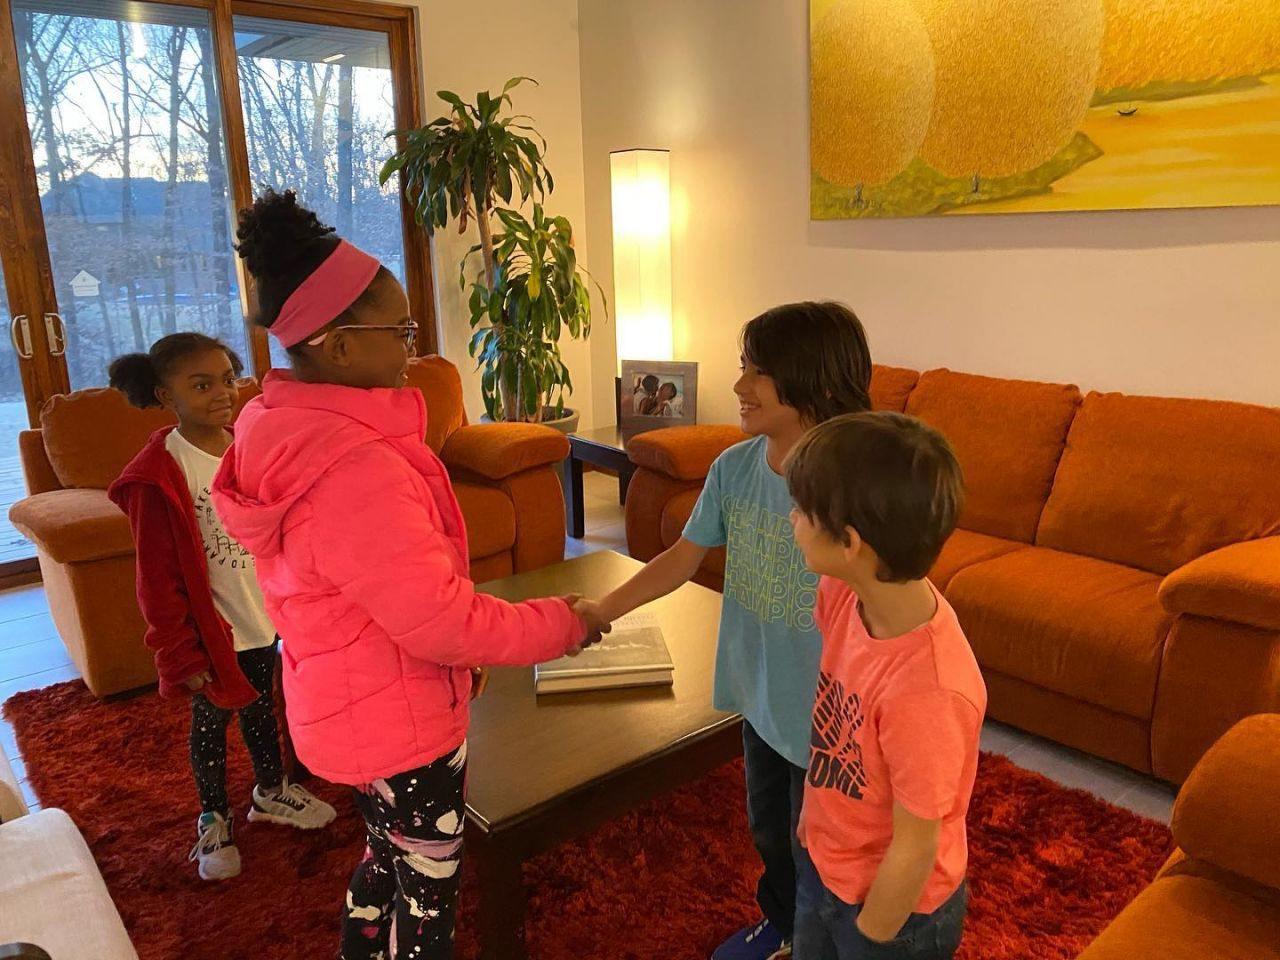 Two young African American girls in athletic gear and coats and two hispanic boys in jeans and t-shirts demonstrate handshaking and introduction in a colorful family living room